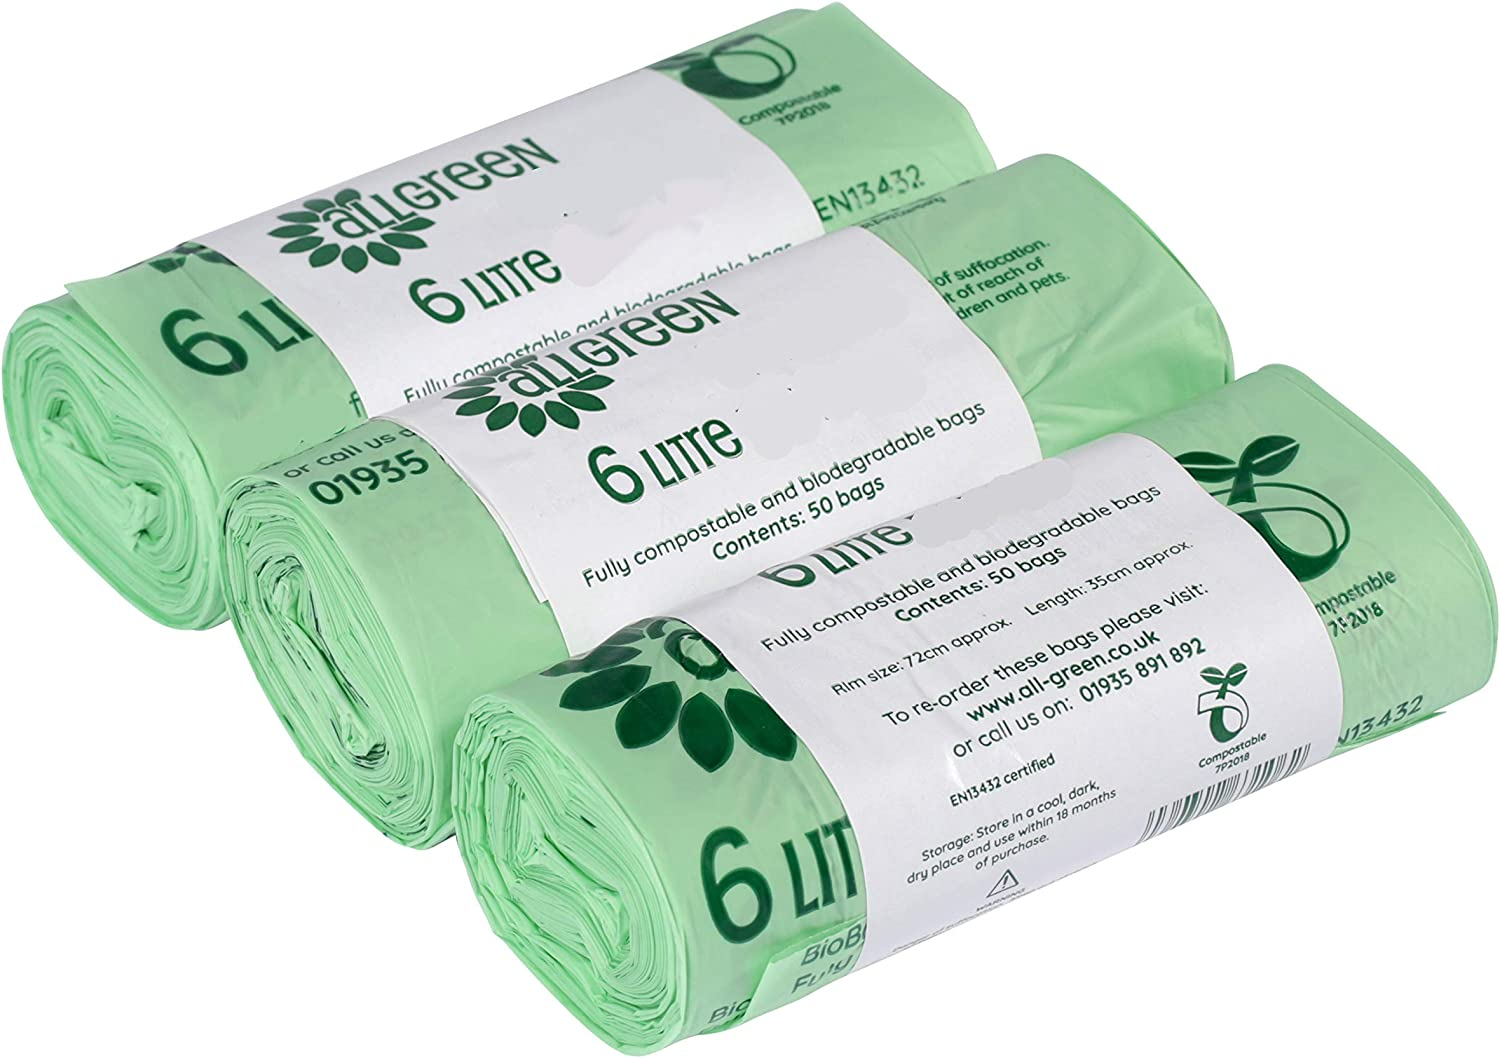 All-Green 6 Litre Compostable Kitchen Caddy Liners 6L Food Waste Bin Liners, 150 Bags